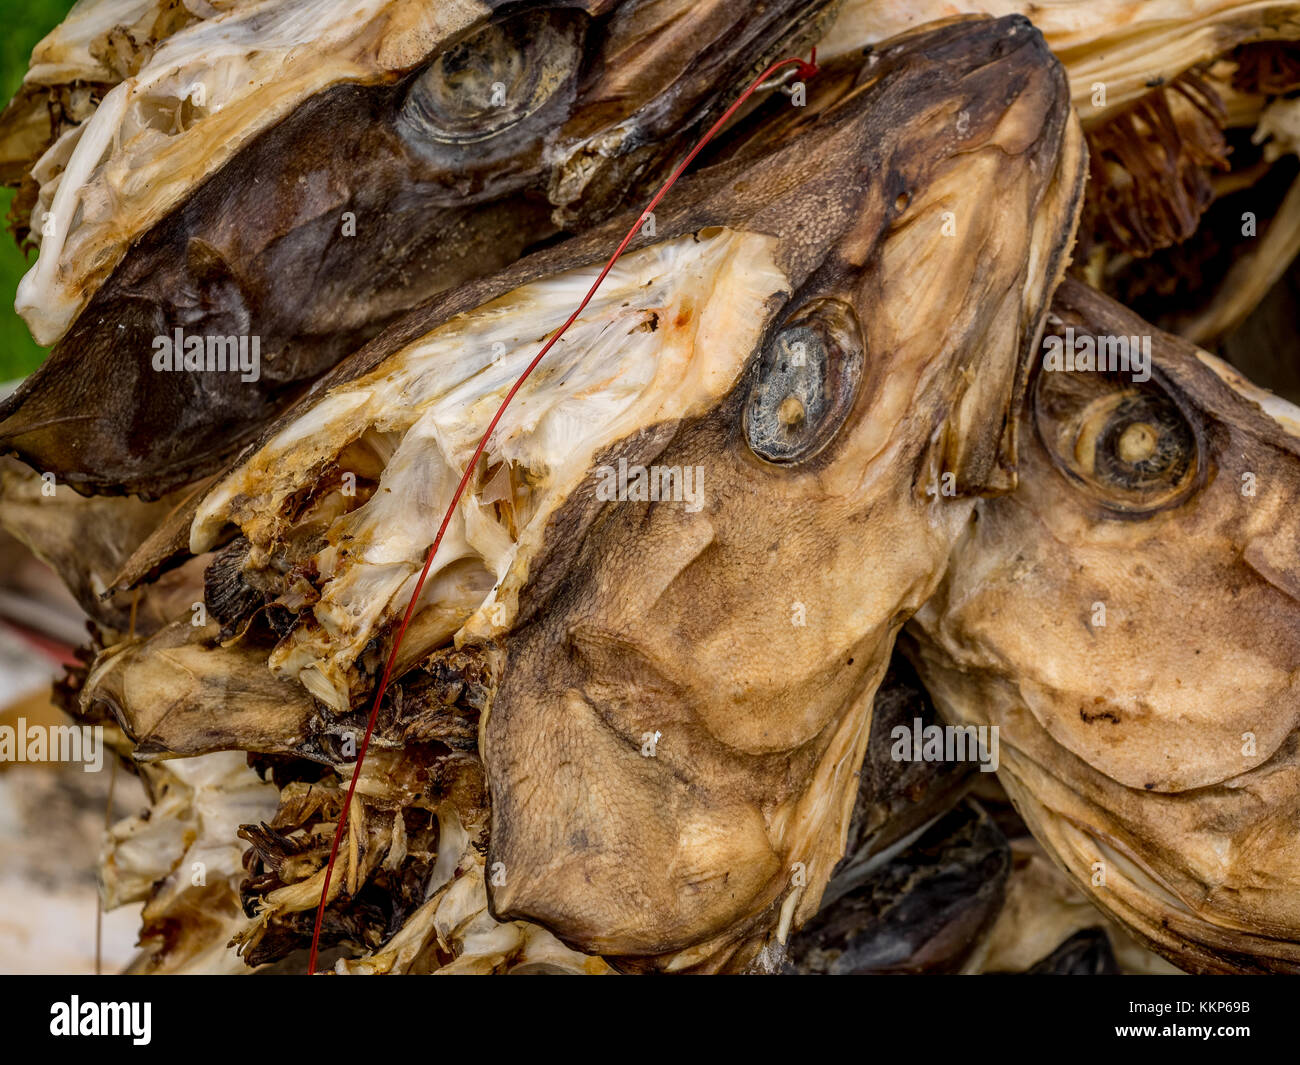 Norway fish hanging dry on stock photos norway fish for Salted cod fish near me